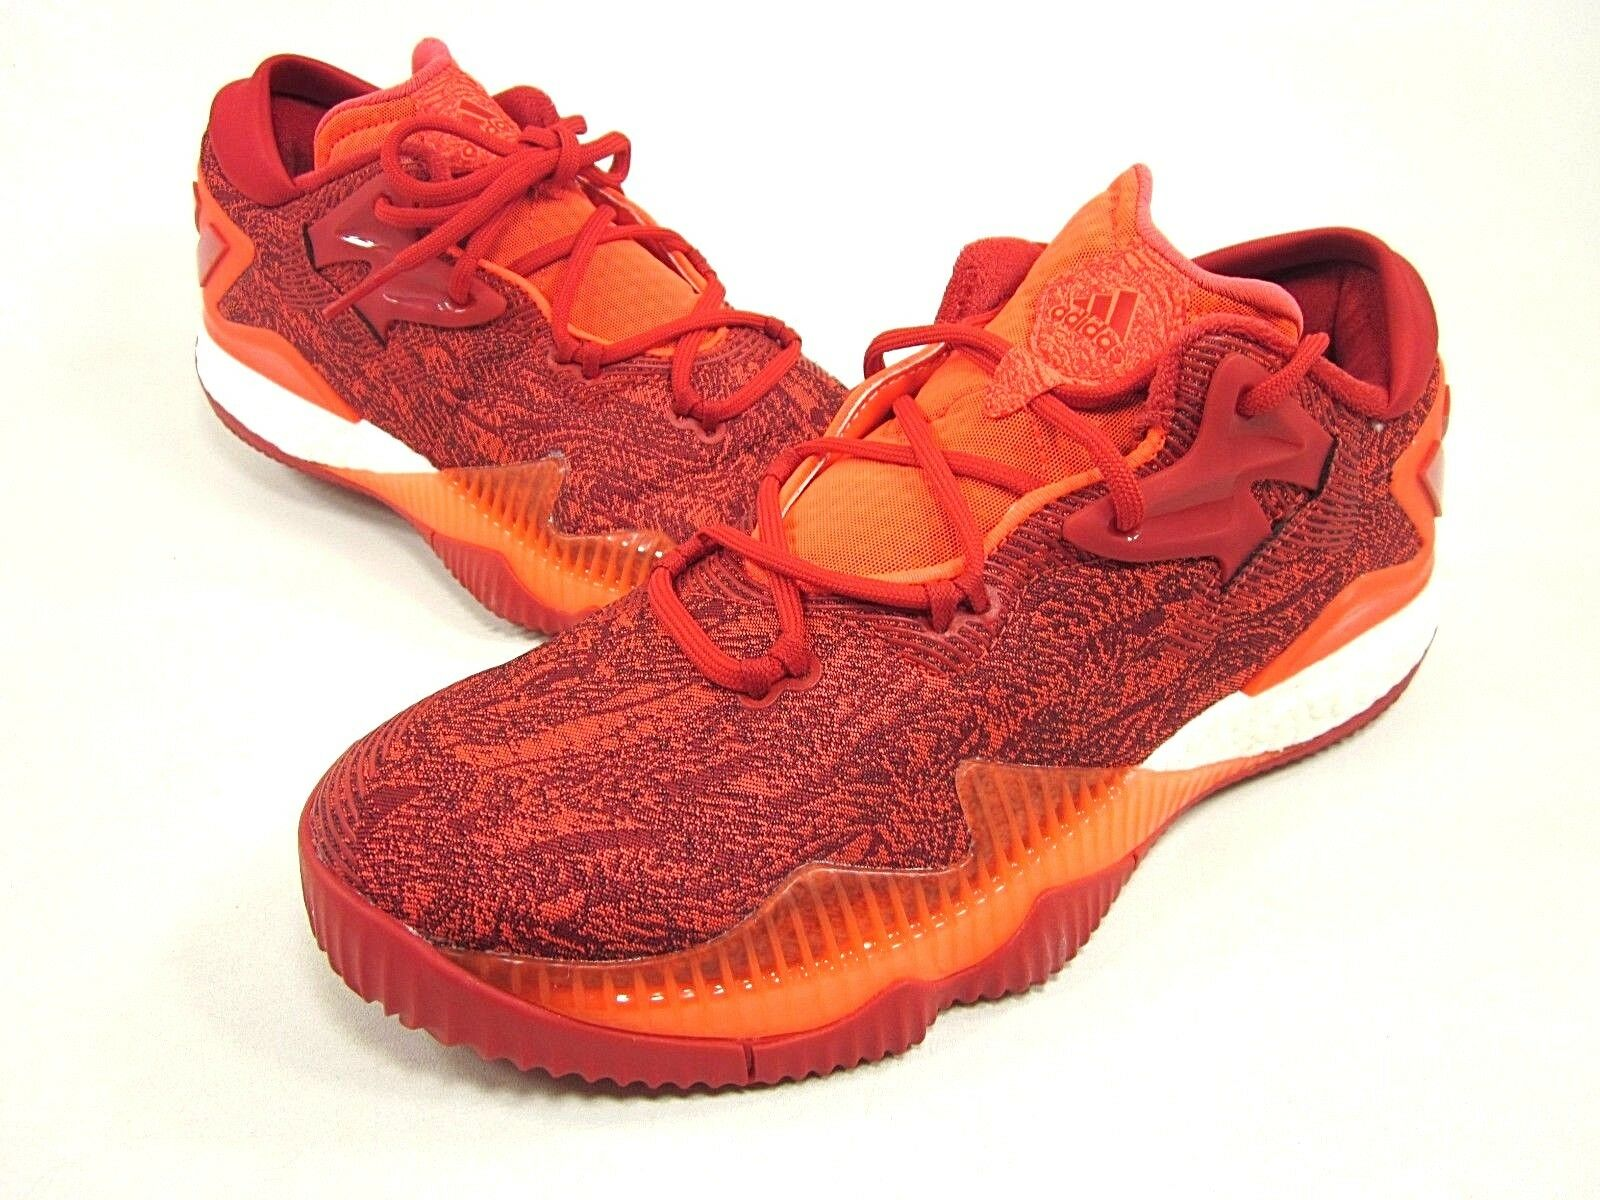 ADIDAS CRAZYLIGHT BOOST SHOES LOW 2016 MEN BASKETBALL SHOES BOOST SIZE 11, B42389 30954d